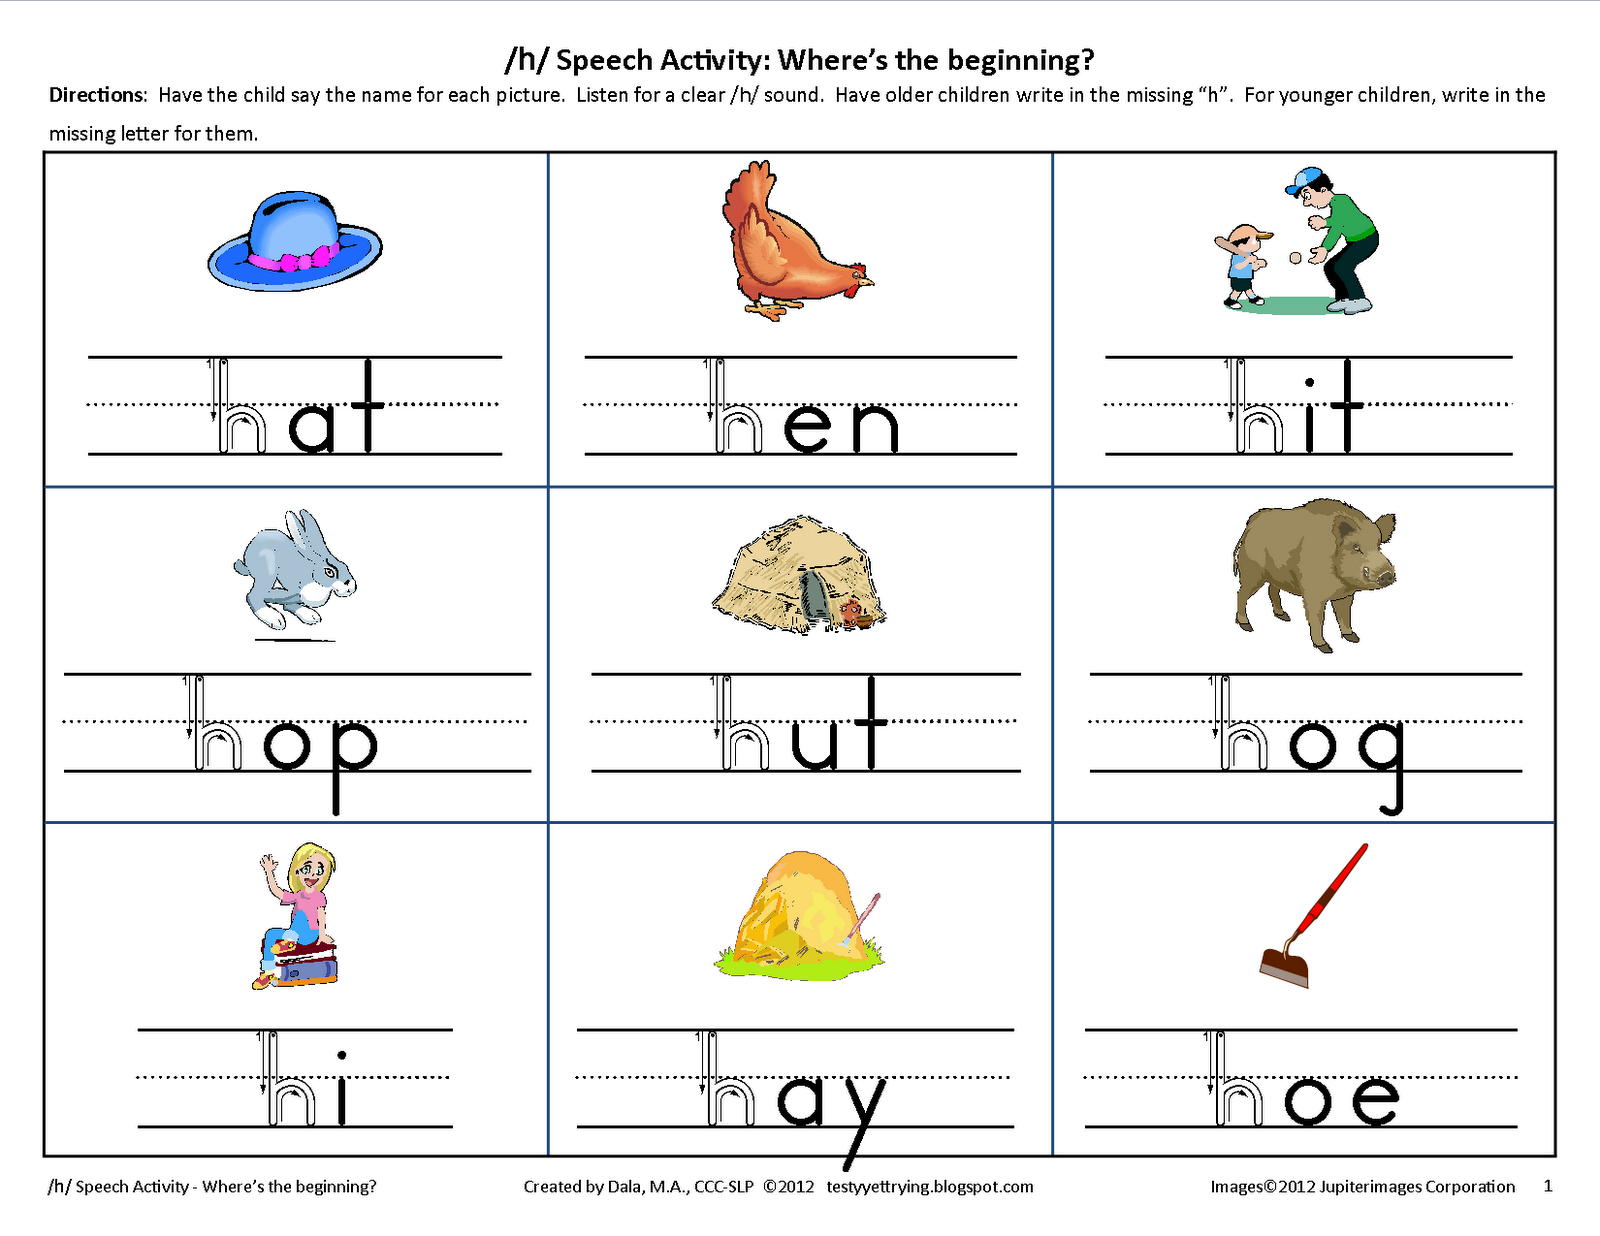 Weirdmailus  Gorgeous Testy Yet Trying Initial H Speech Worksheet With Excellent Make Classroom Teachers Happy Reinforce Phonics And Handwriting And Practice Speech All At The Same Time With Beauteous Animal Adaptations Worksheets Also Arcs And Chords Worksheet Answers In Addition Time Telling Worksheets And Better Buy Worksheet As Well As Context Clues Worksheets Rd Grade Additionally Va Irrrl Worksheet From Testyyettryingblogspotcom With Weirdmailus  Excellent Testy Yet Trying Initial H Speech Worksheet With Beauteous Make Classroom Teachers Happy Reinforce Phonics And Handwriting And Practice Speech All At The Same Time And Gorgeous Animal Adaptations Worksheets Also Arcs And Chords Worksheet Answers In Addition Time Telling Worksheets From Testyyettryingblogspotcom